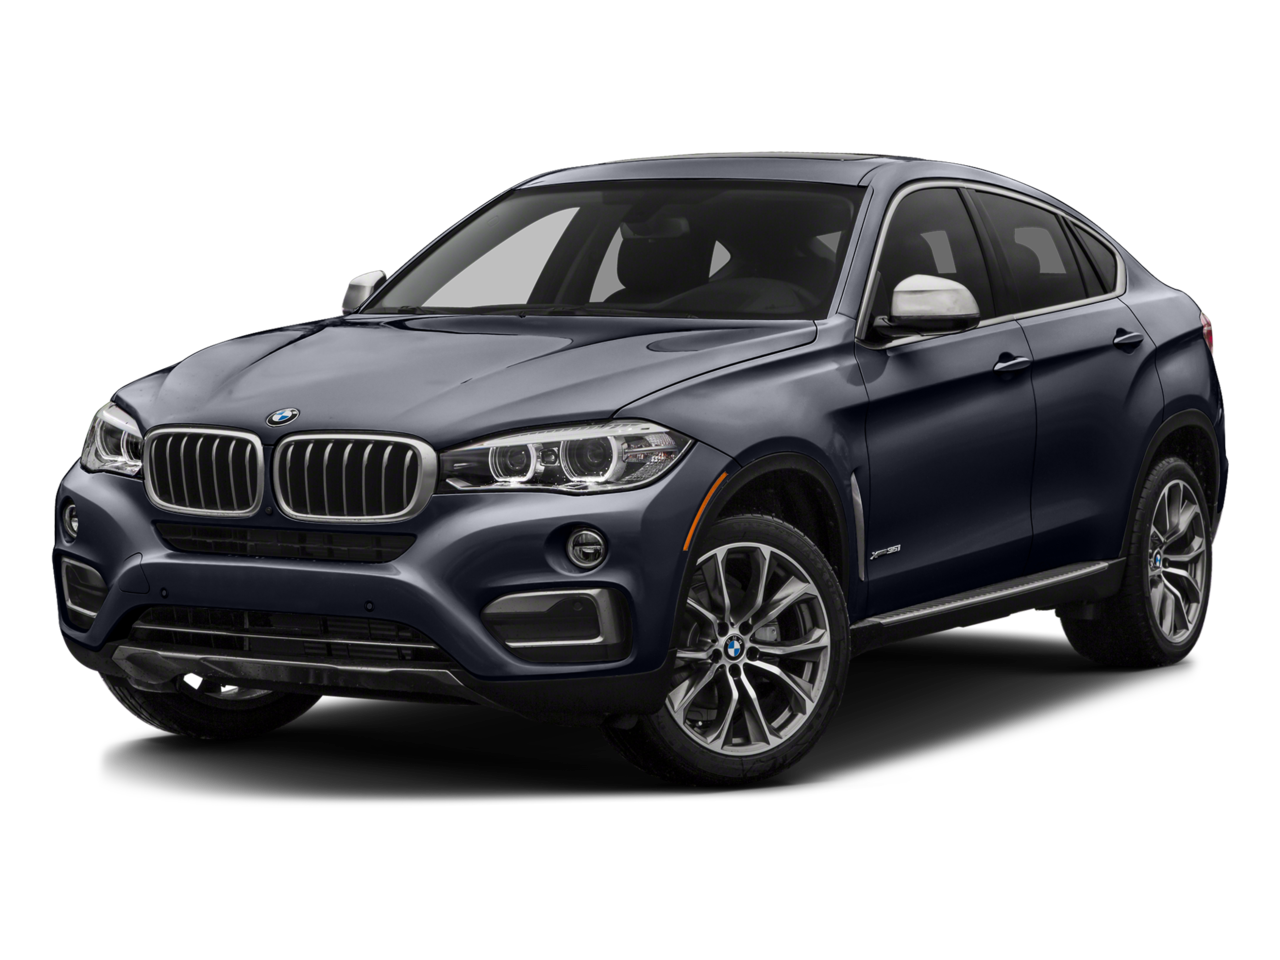 2017 BMW X6 in Bowling Green, KY